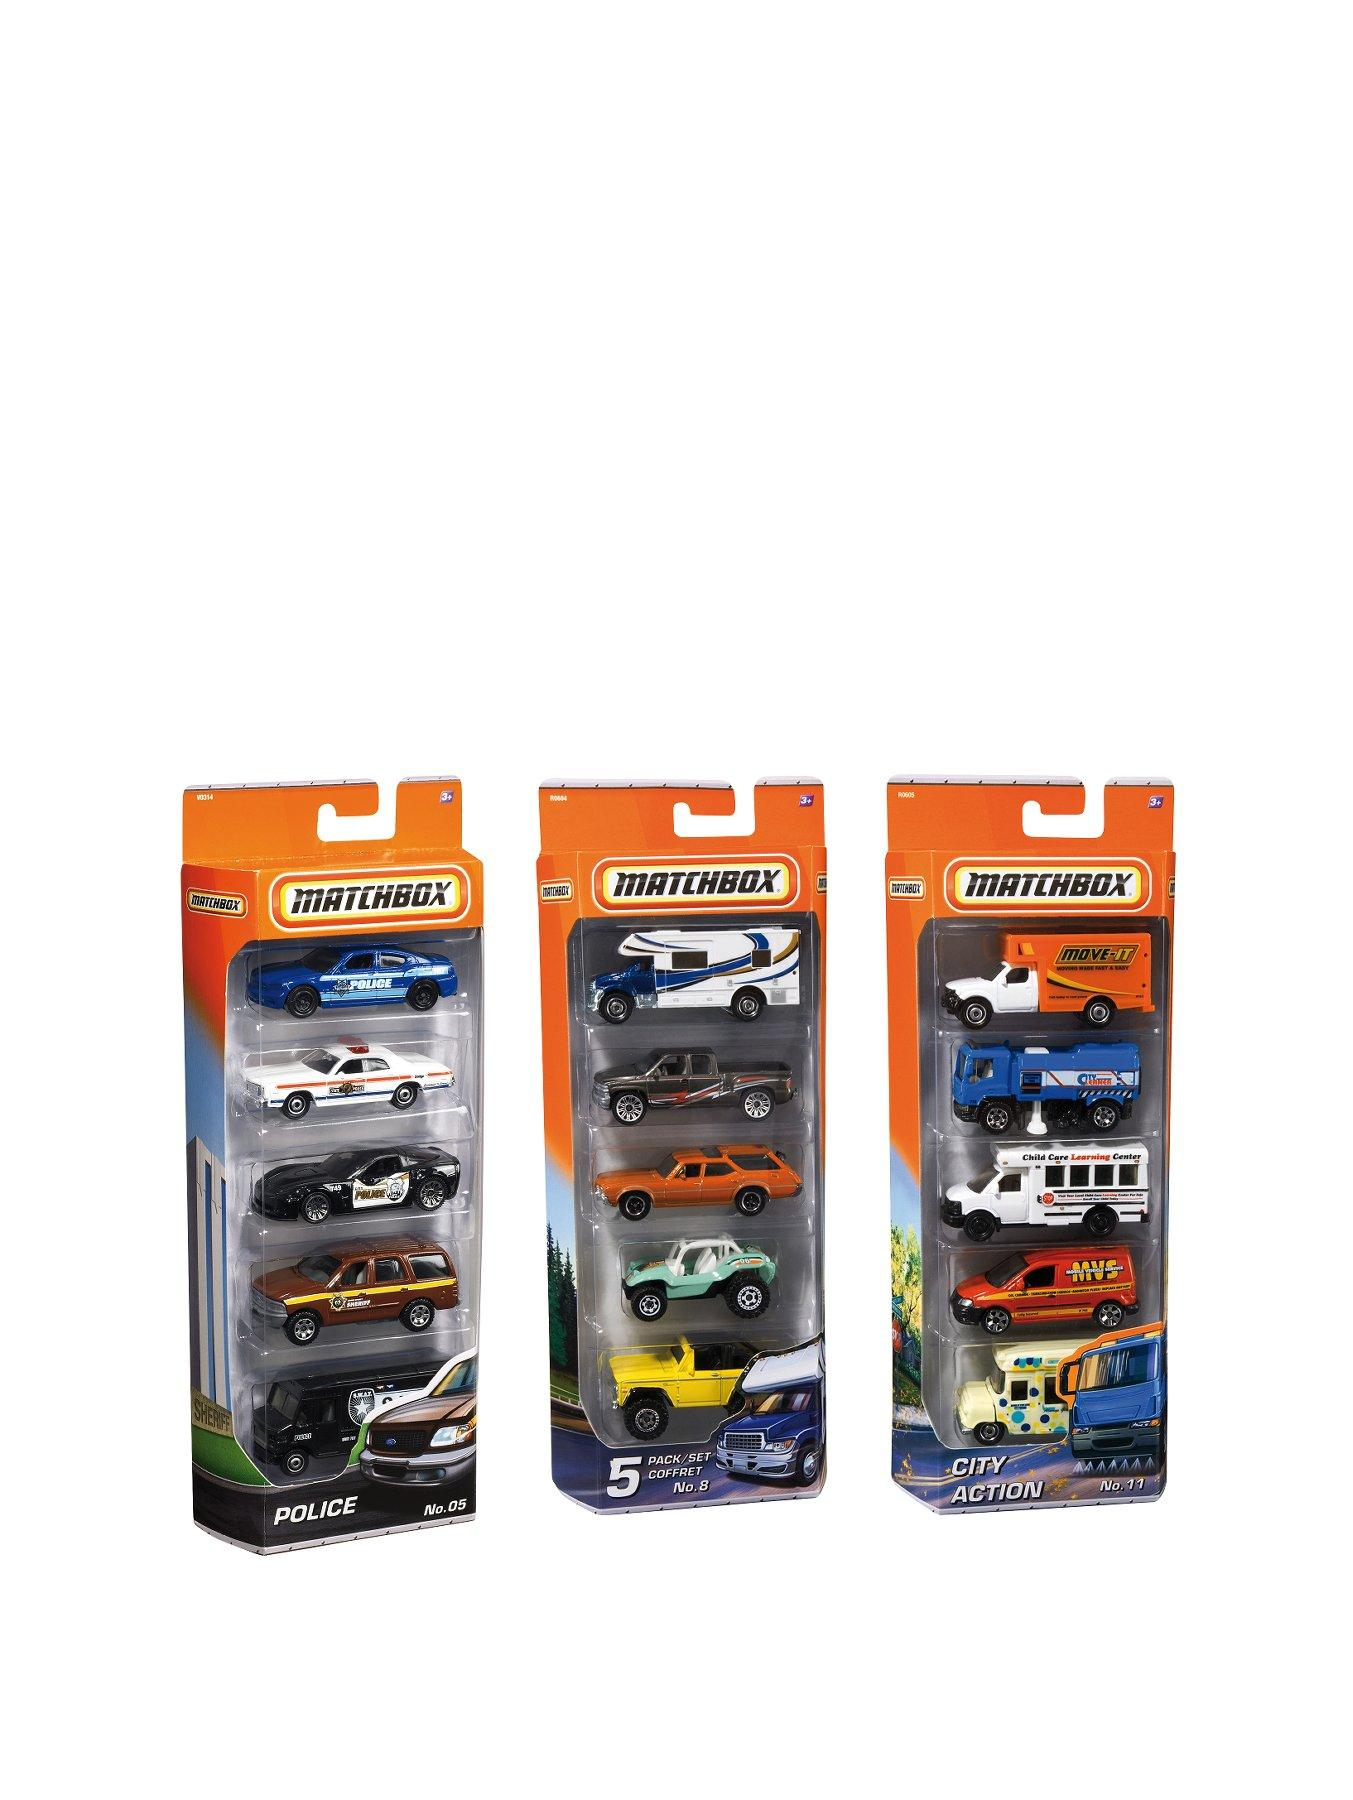 Matchbox Cars 5-Pack Assortment